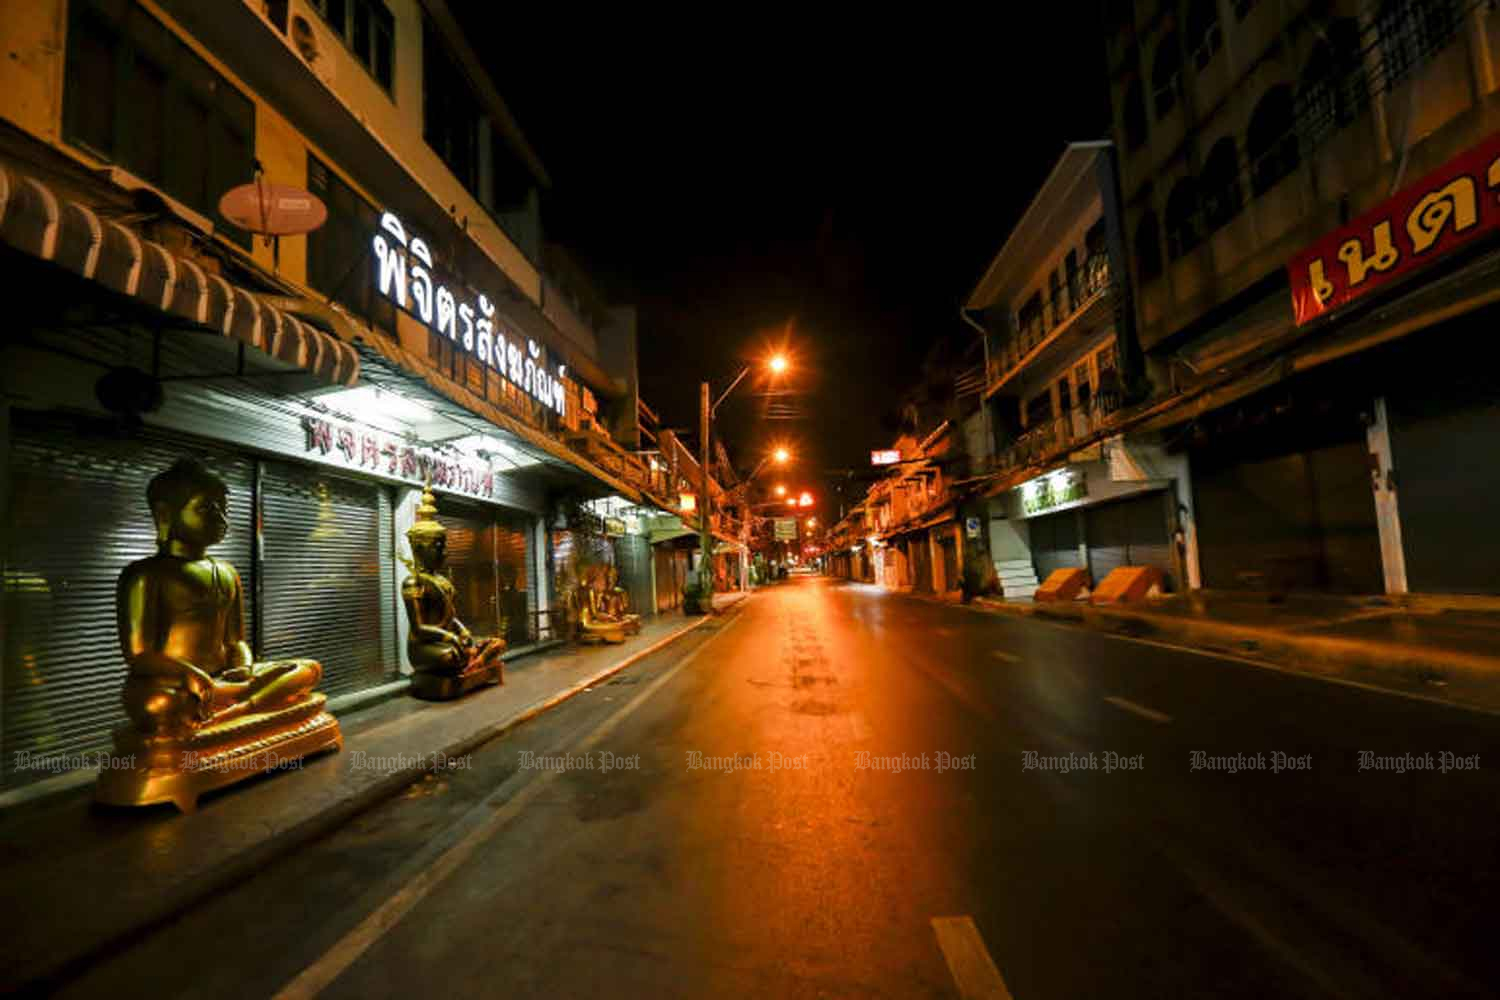 Bamrung Muang Road, in Phra Nakhon district of Bangkok, which is famous for being lined with shops selling statues of Buddha, is deserted after 10pm on April 3 night. Prime Minister Prayut Chao-cha earlier announced a 10pm-4am nationwide curfew to combat the outbreak of the Covid19 virus. (Photo: Pattarapong Chatpattarasill)